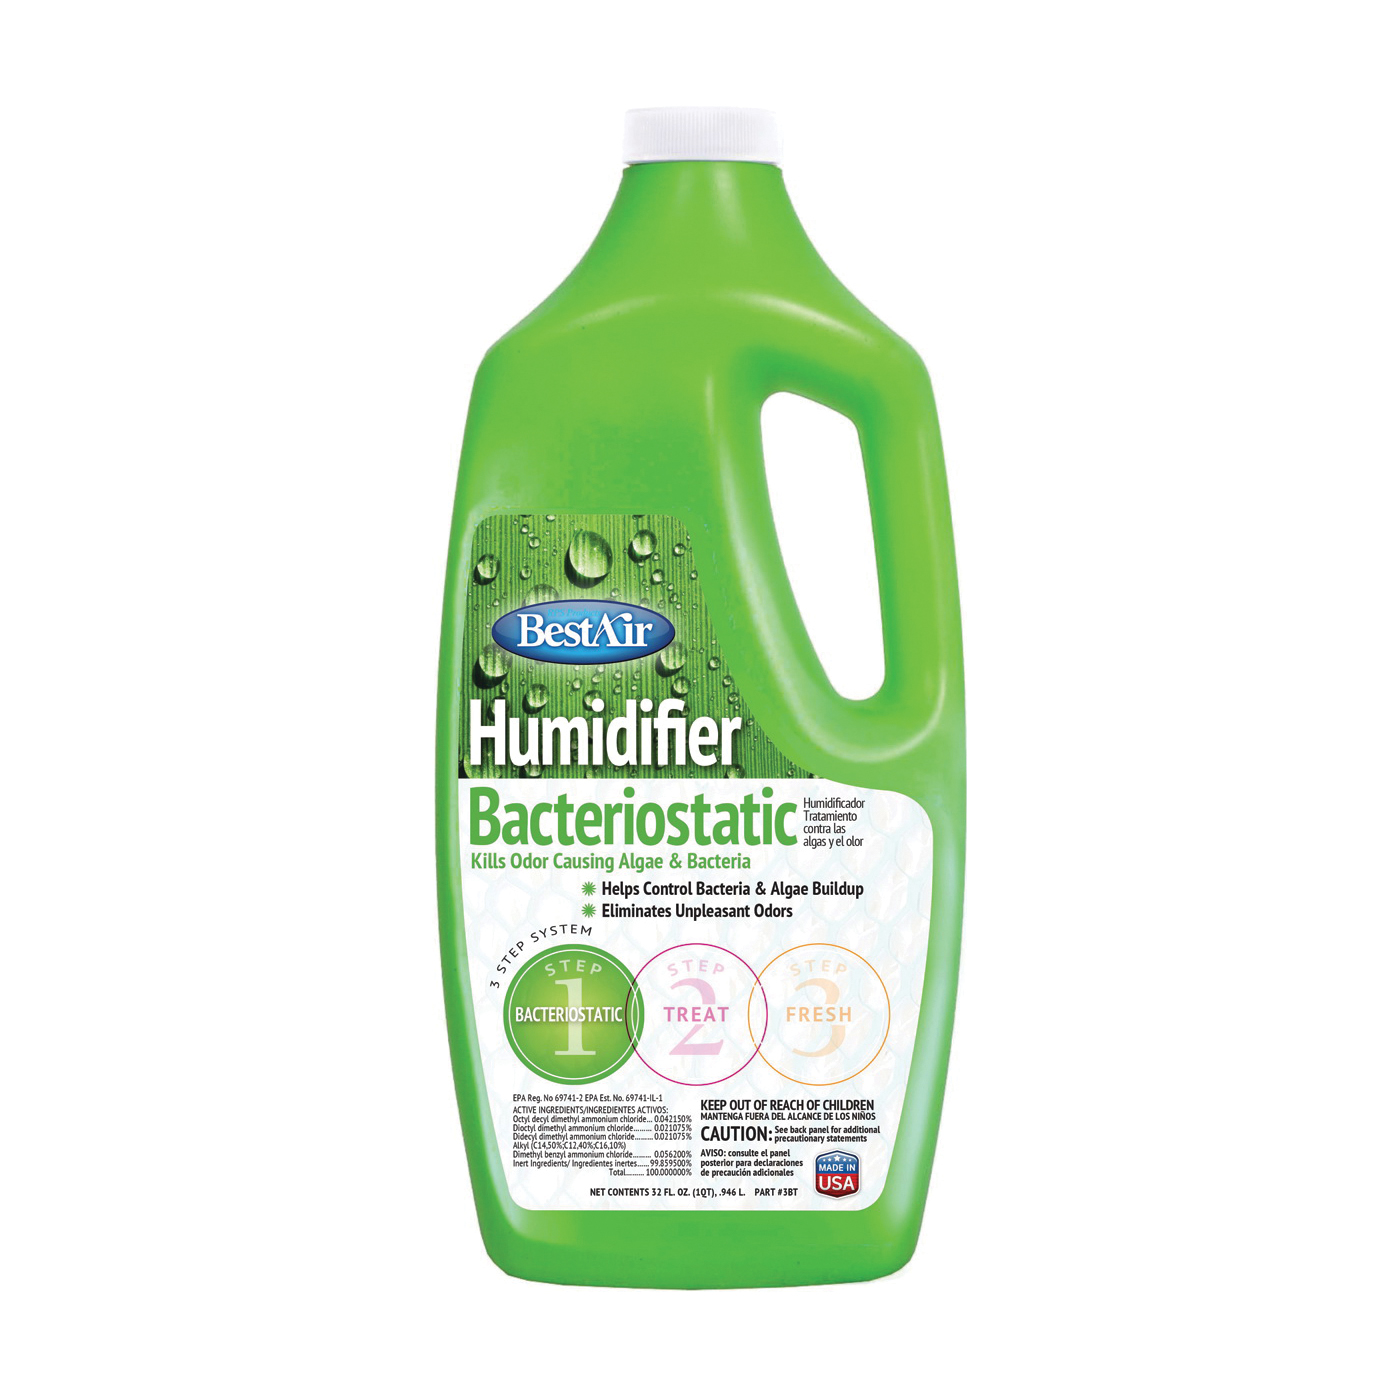 Picture of BestAir 3BT Humidifier Bacteriostatic, Mild, 32 oz Package